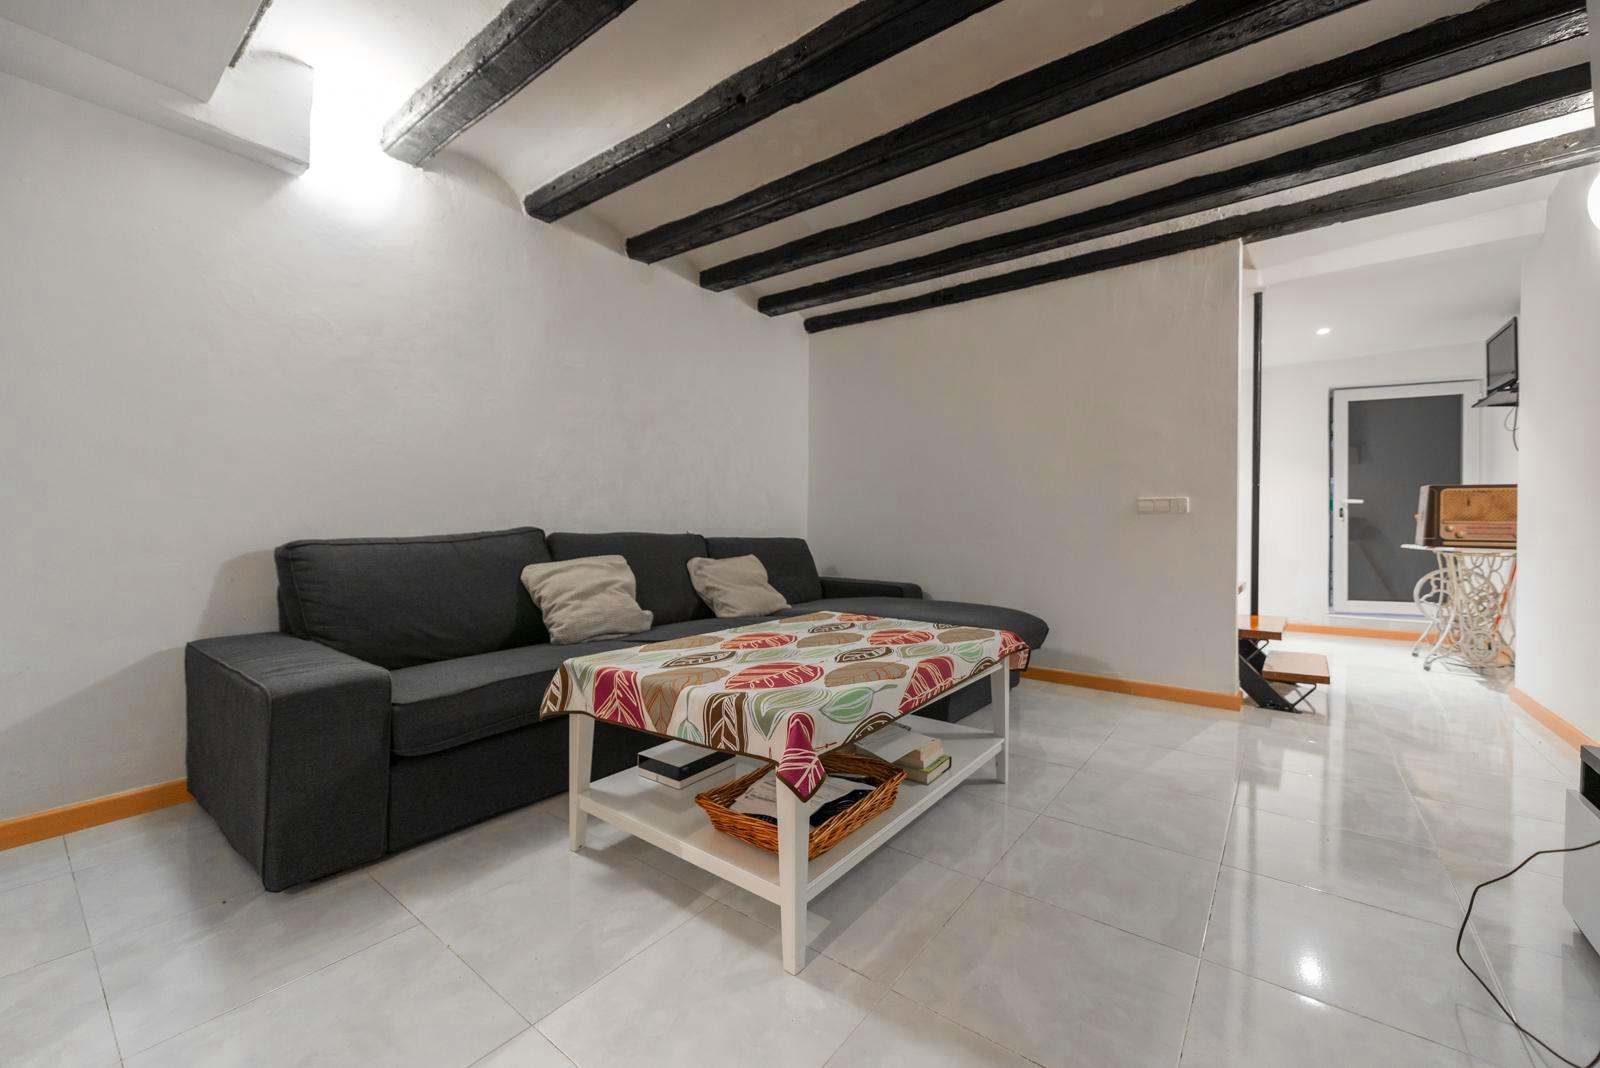 207708 Ground Floor for sale in Ciutat Vella, Barri Gòtic 2